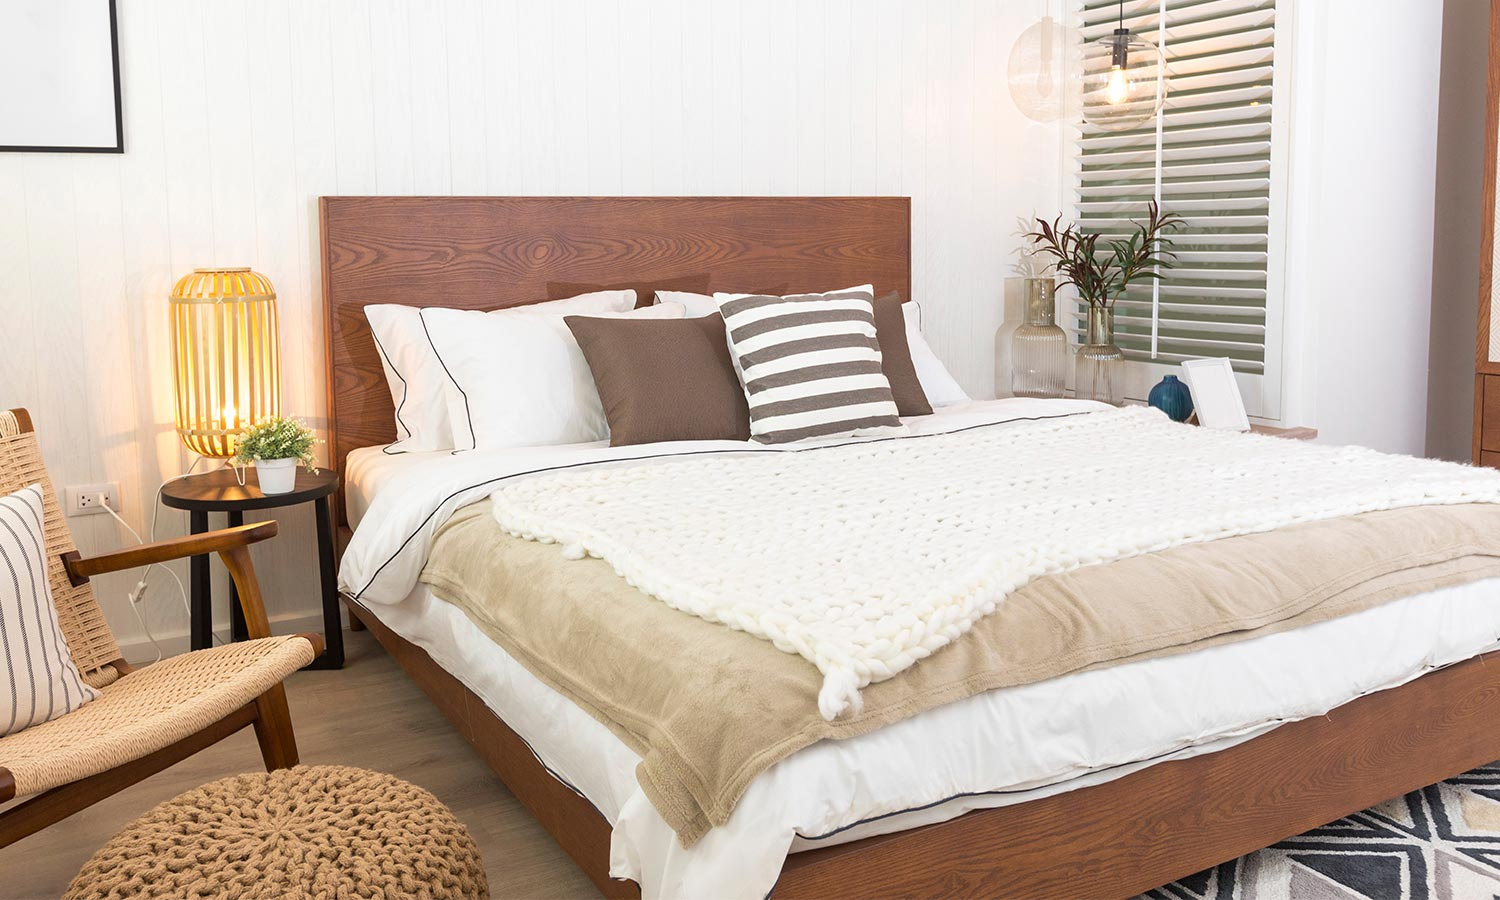 A wooden bed frame with a tall headboard.